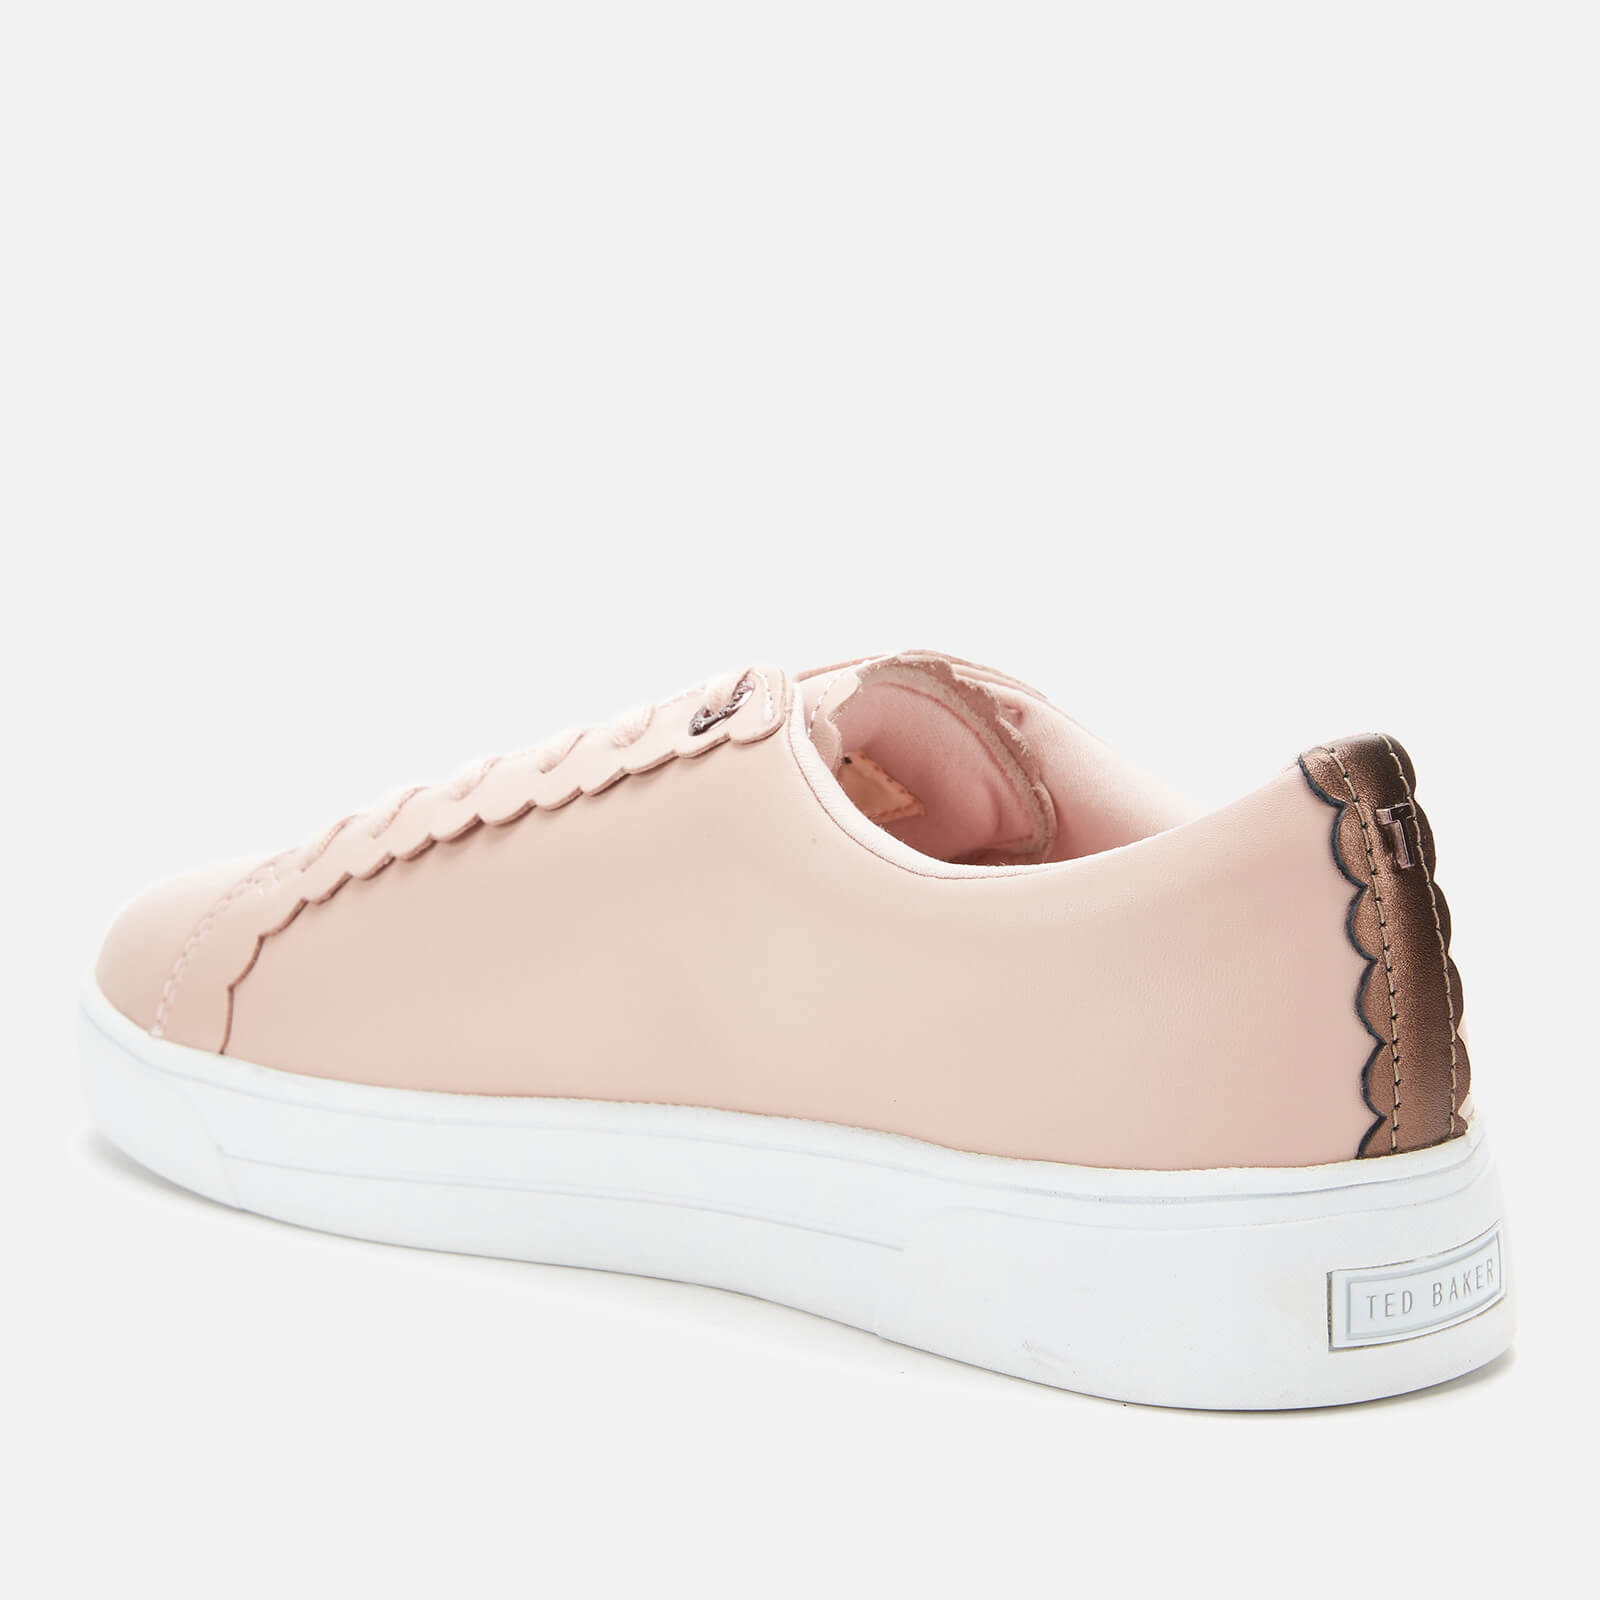 Ted Baker Women's Tillys Leather Cupsole Trainers - Nude Pink